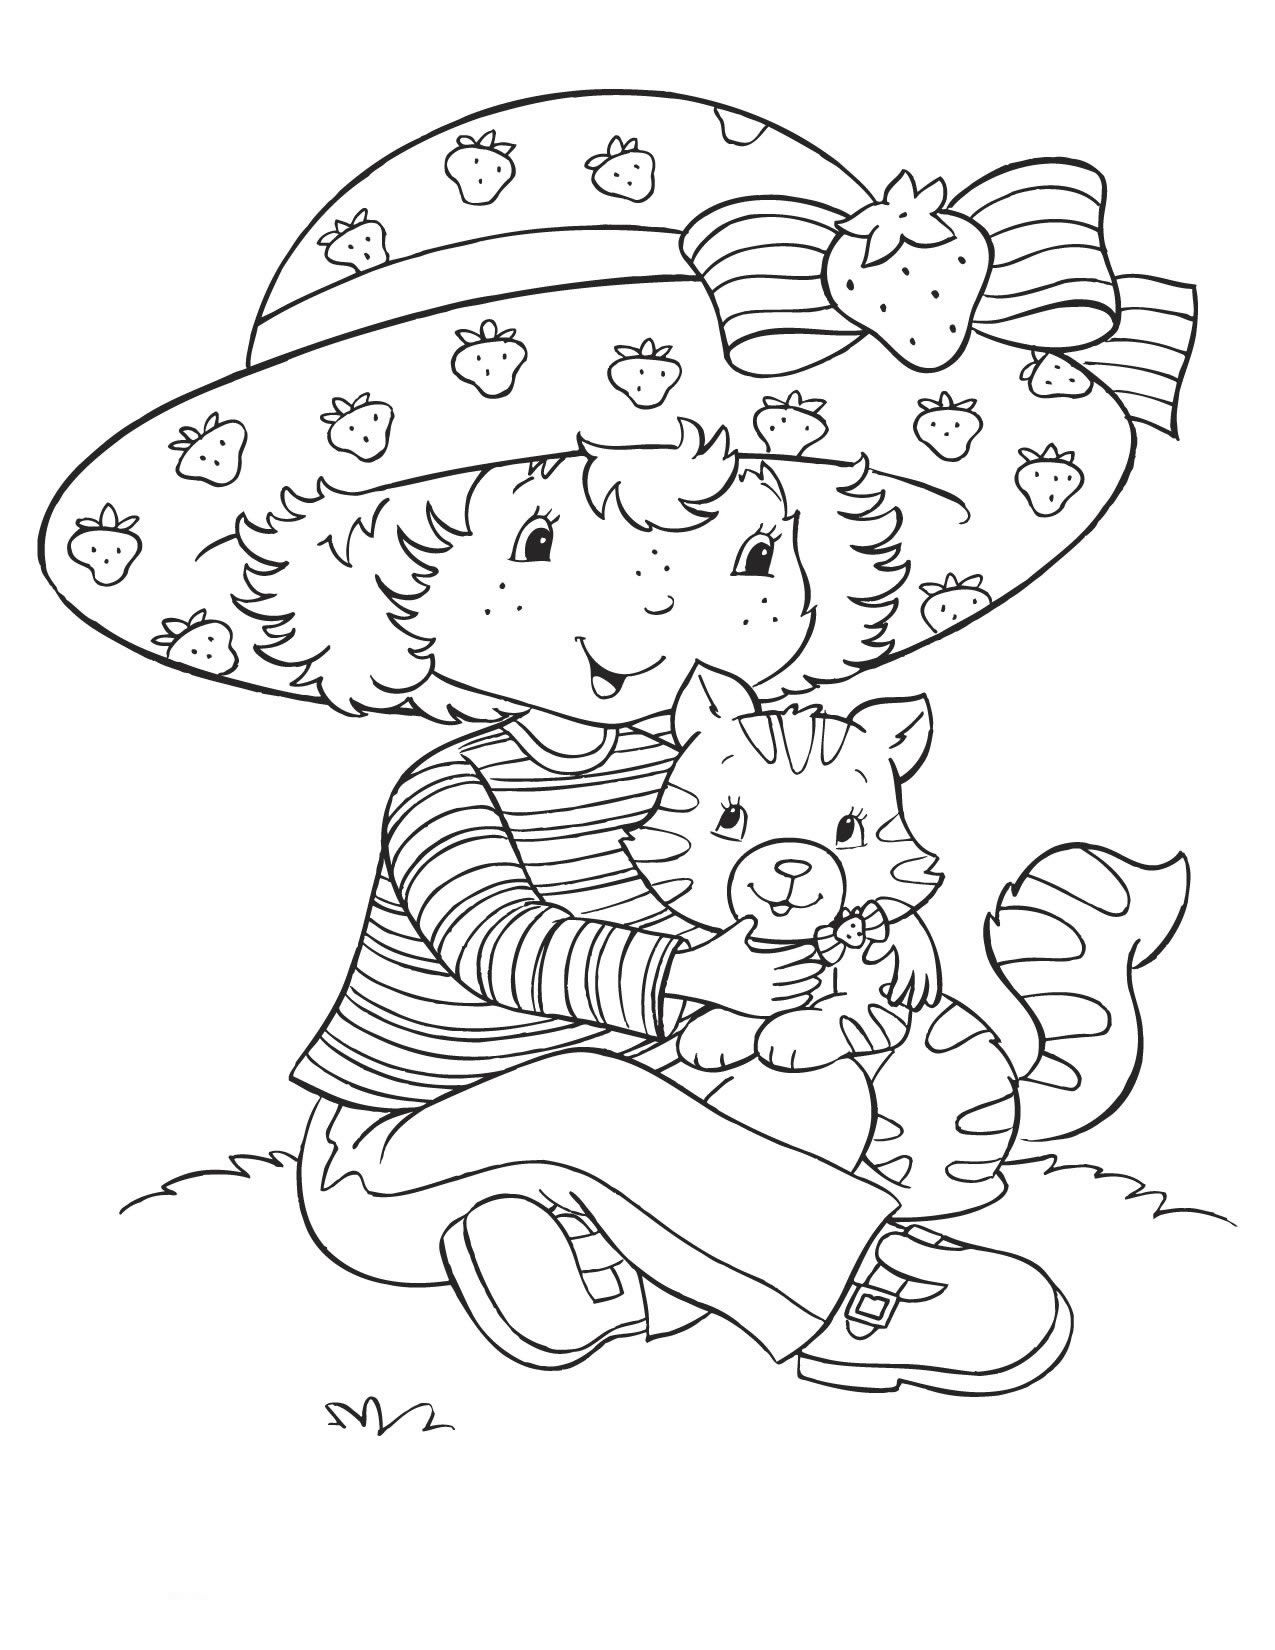 Pinjoe Hafzar On Coloring Pages :) | Pinterest | Strawberry - Strawberry Shortcake Coloring Pages Free Printable